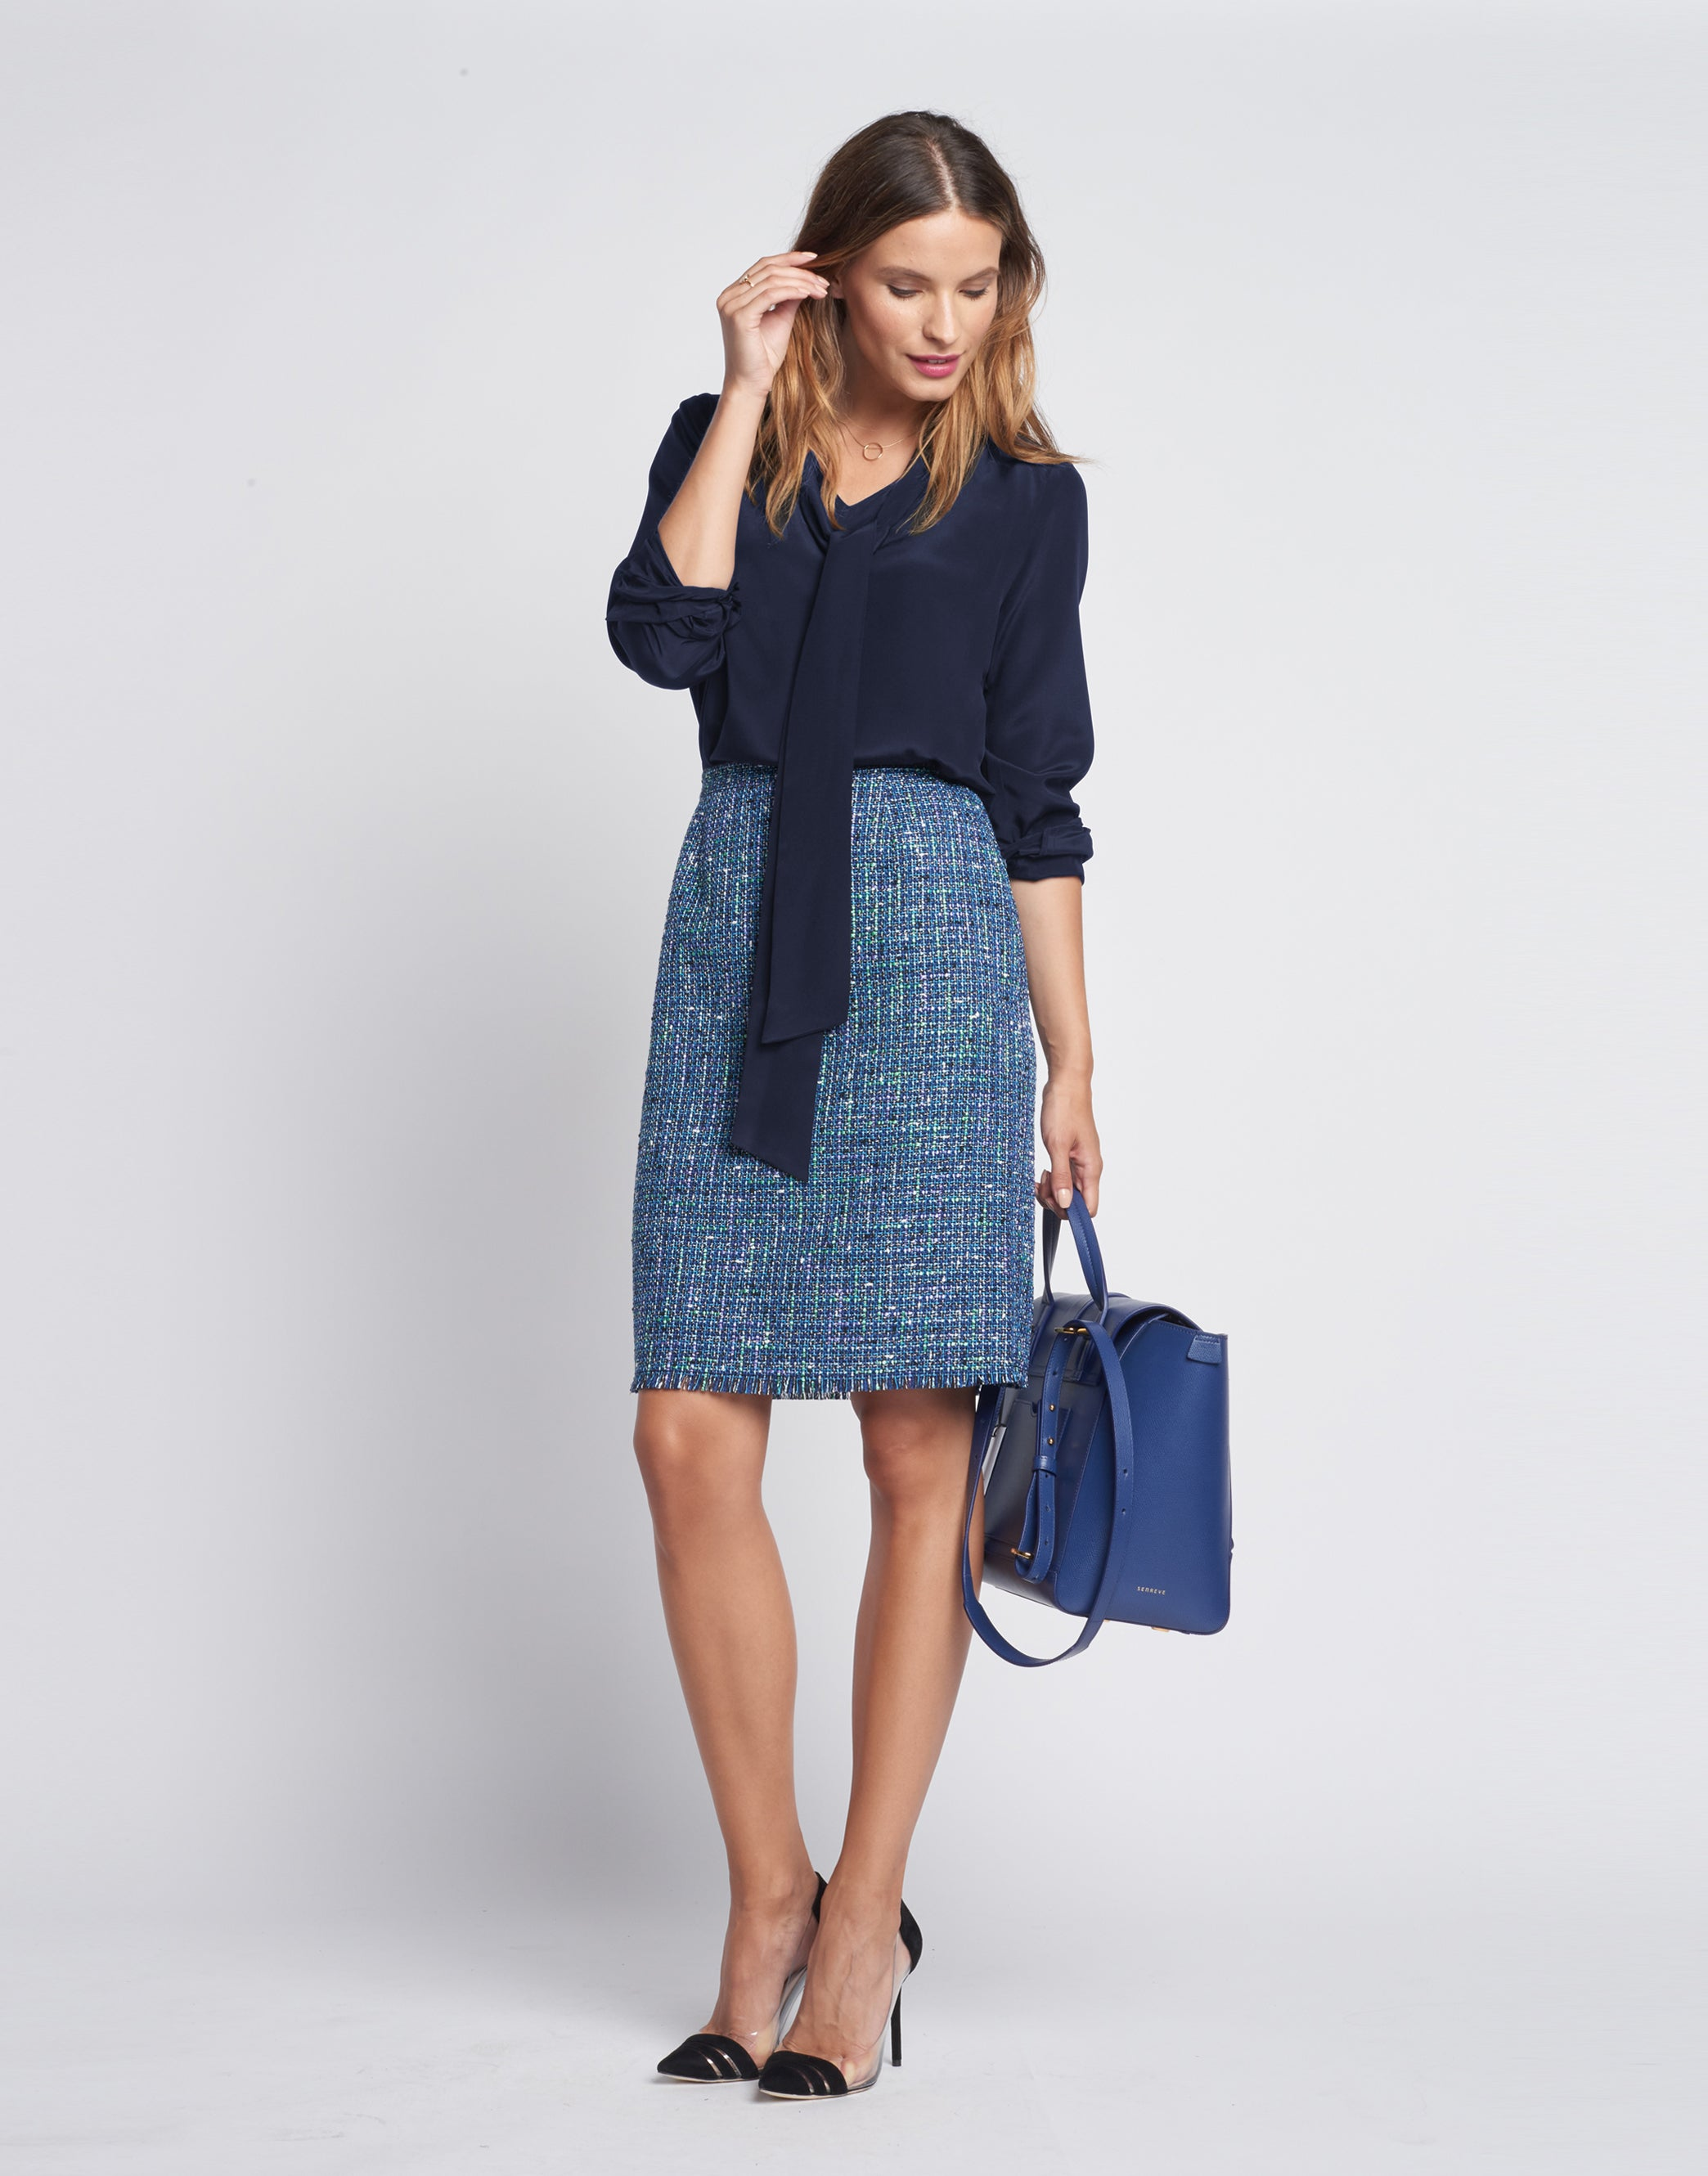 How to Style a Tweed Skirt for Business Casual